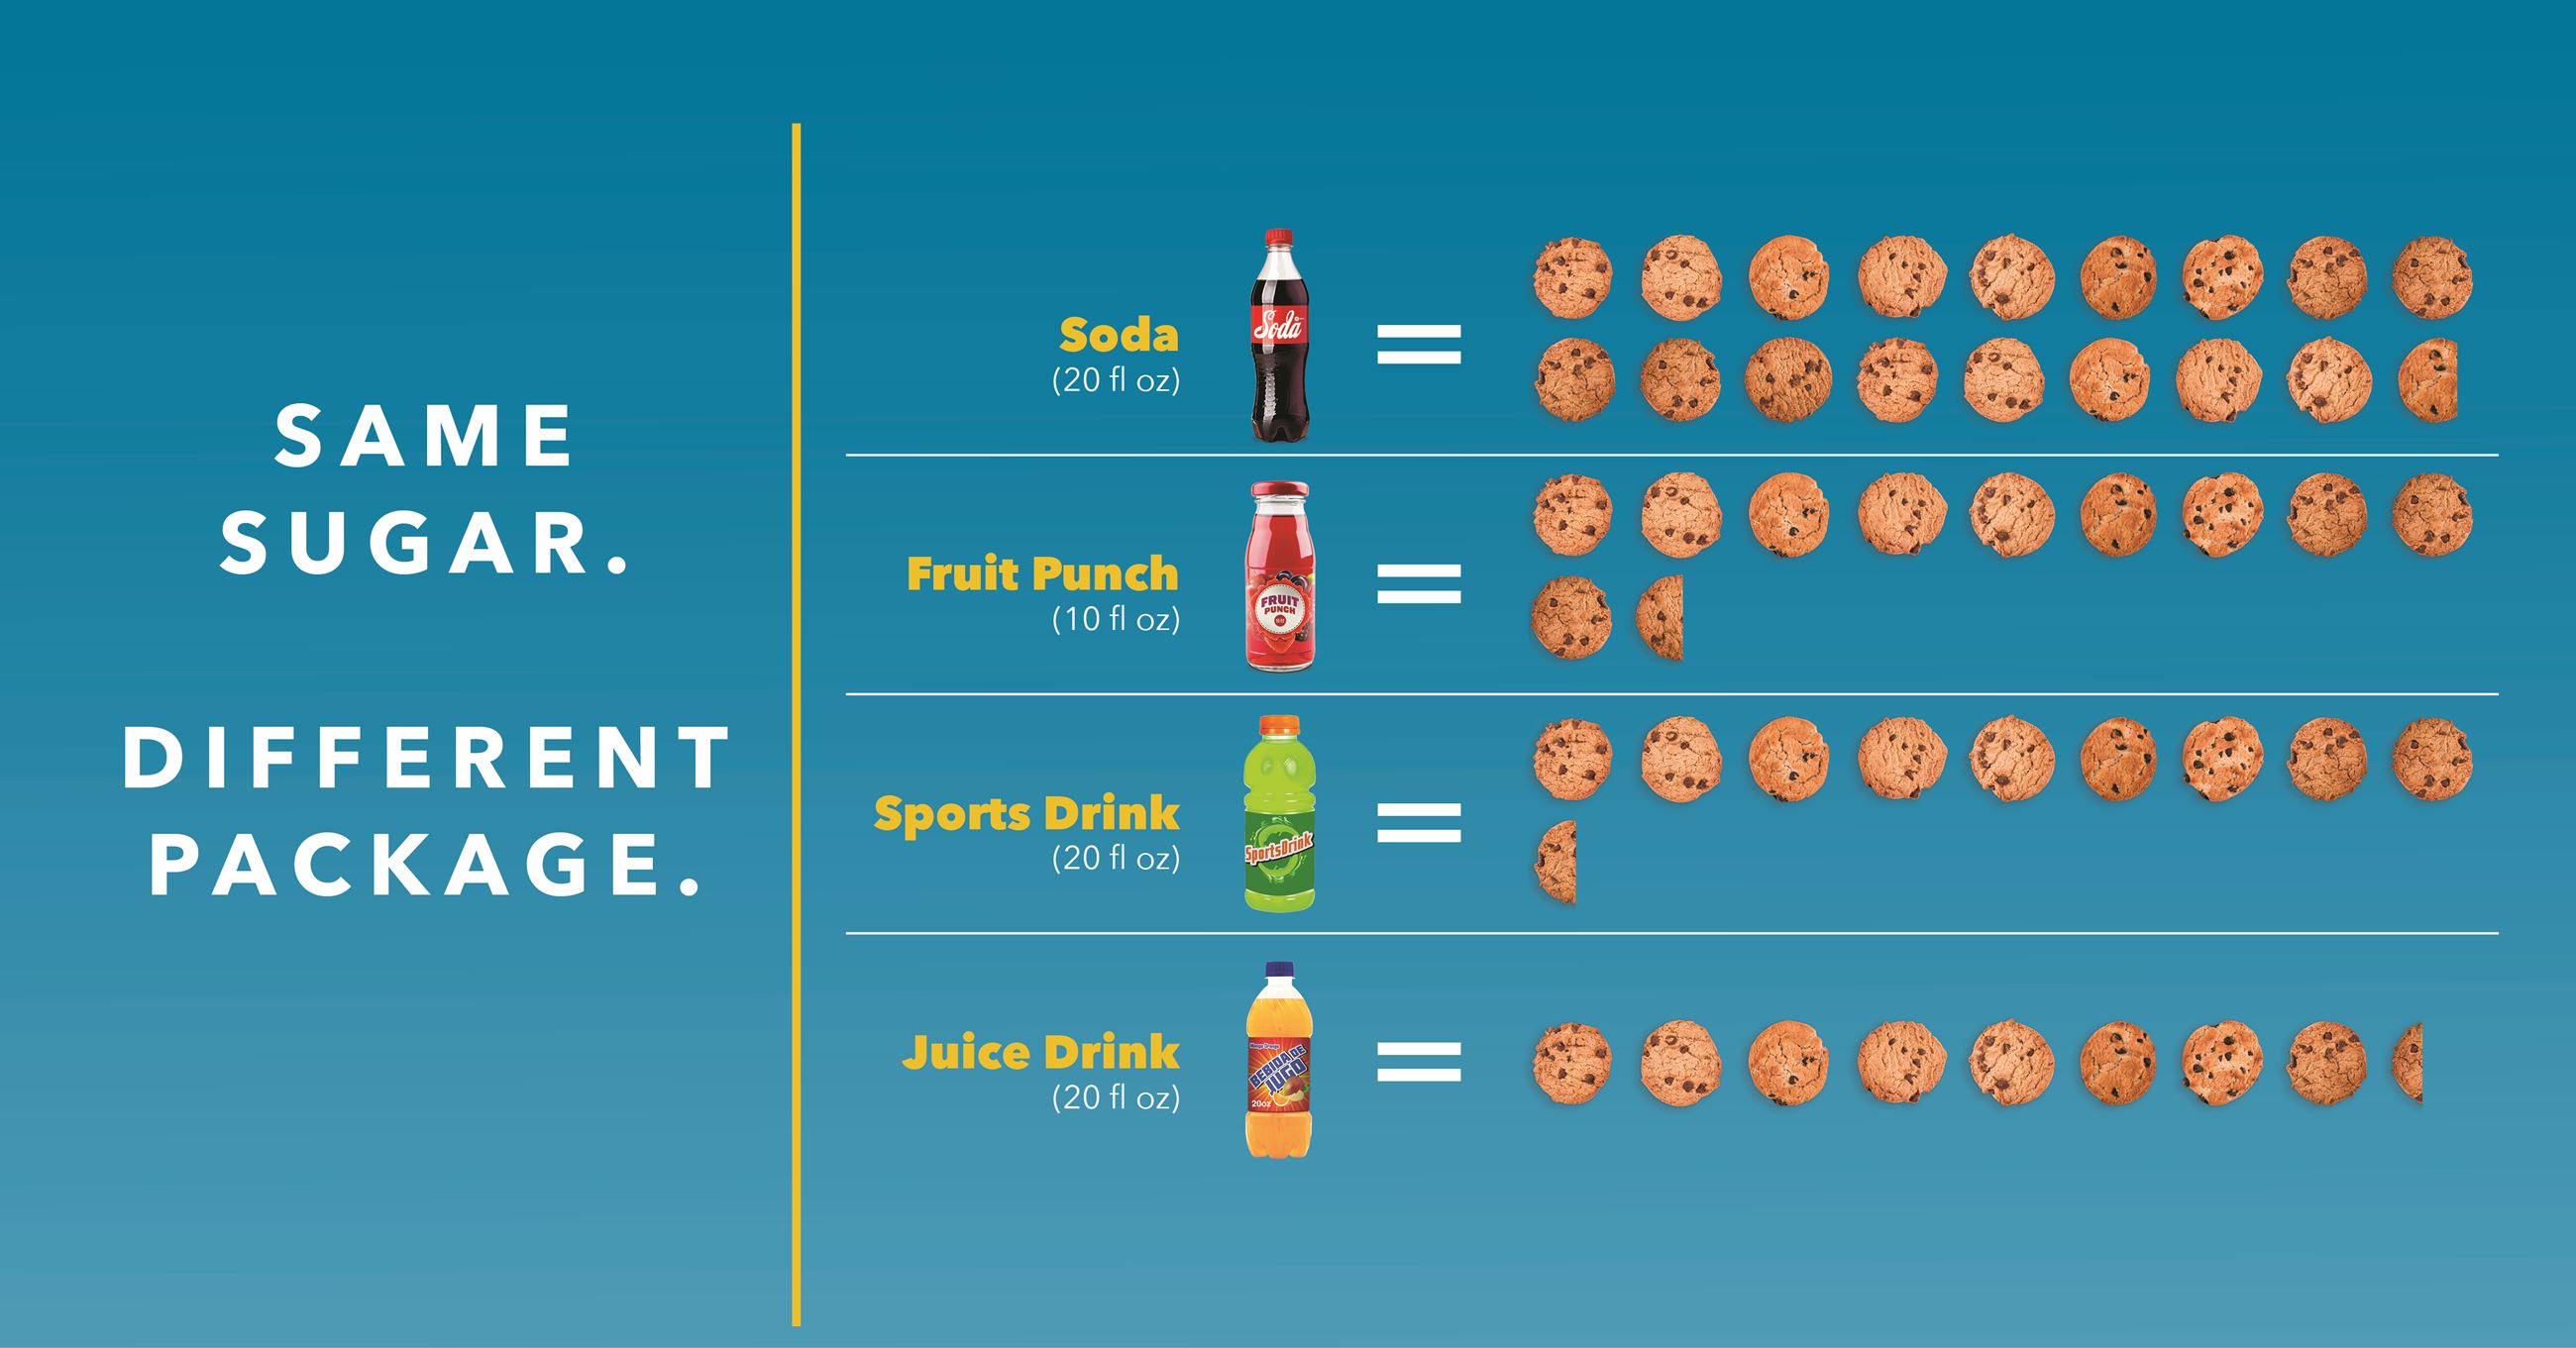 Infographic showing sugary drinks and the equivalent amount of sugar in number of cookies.